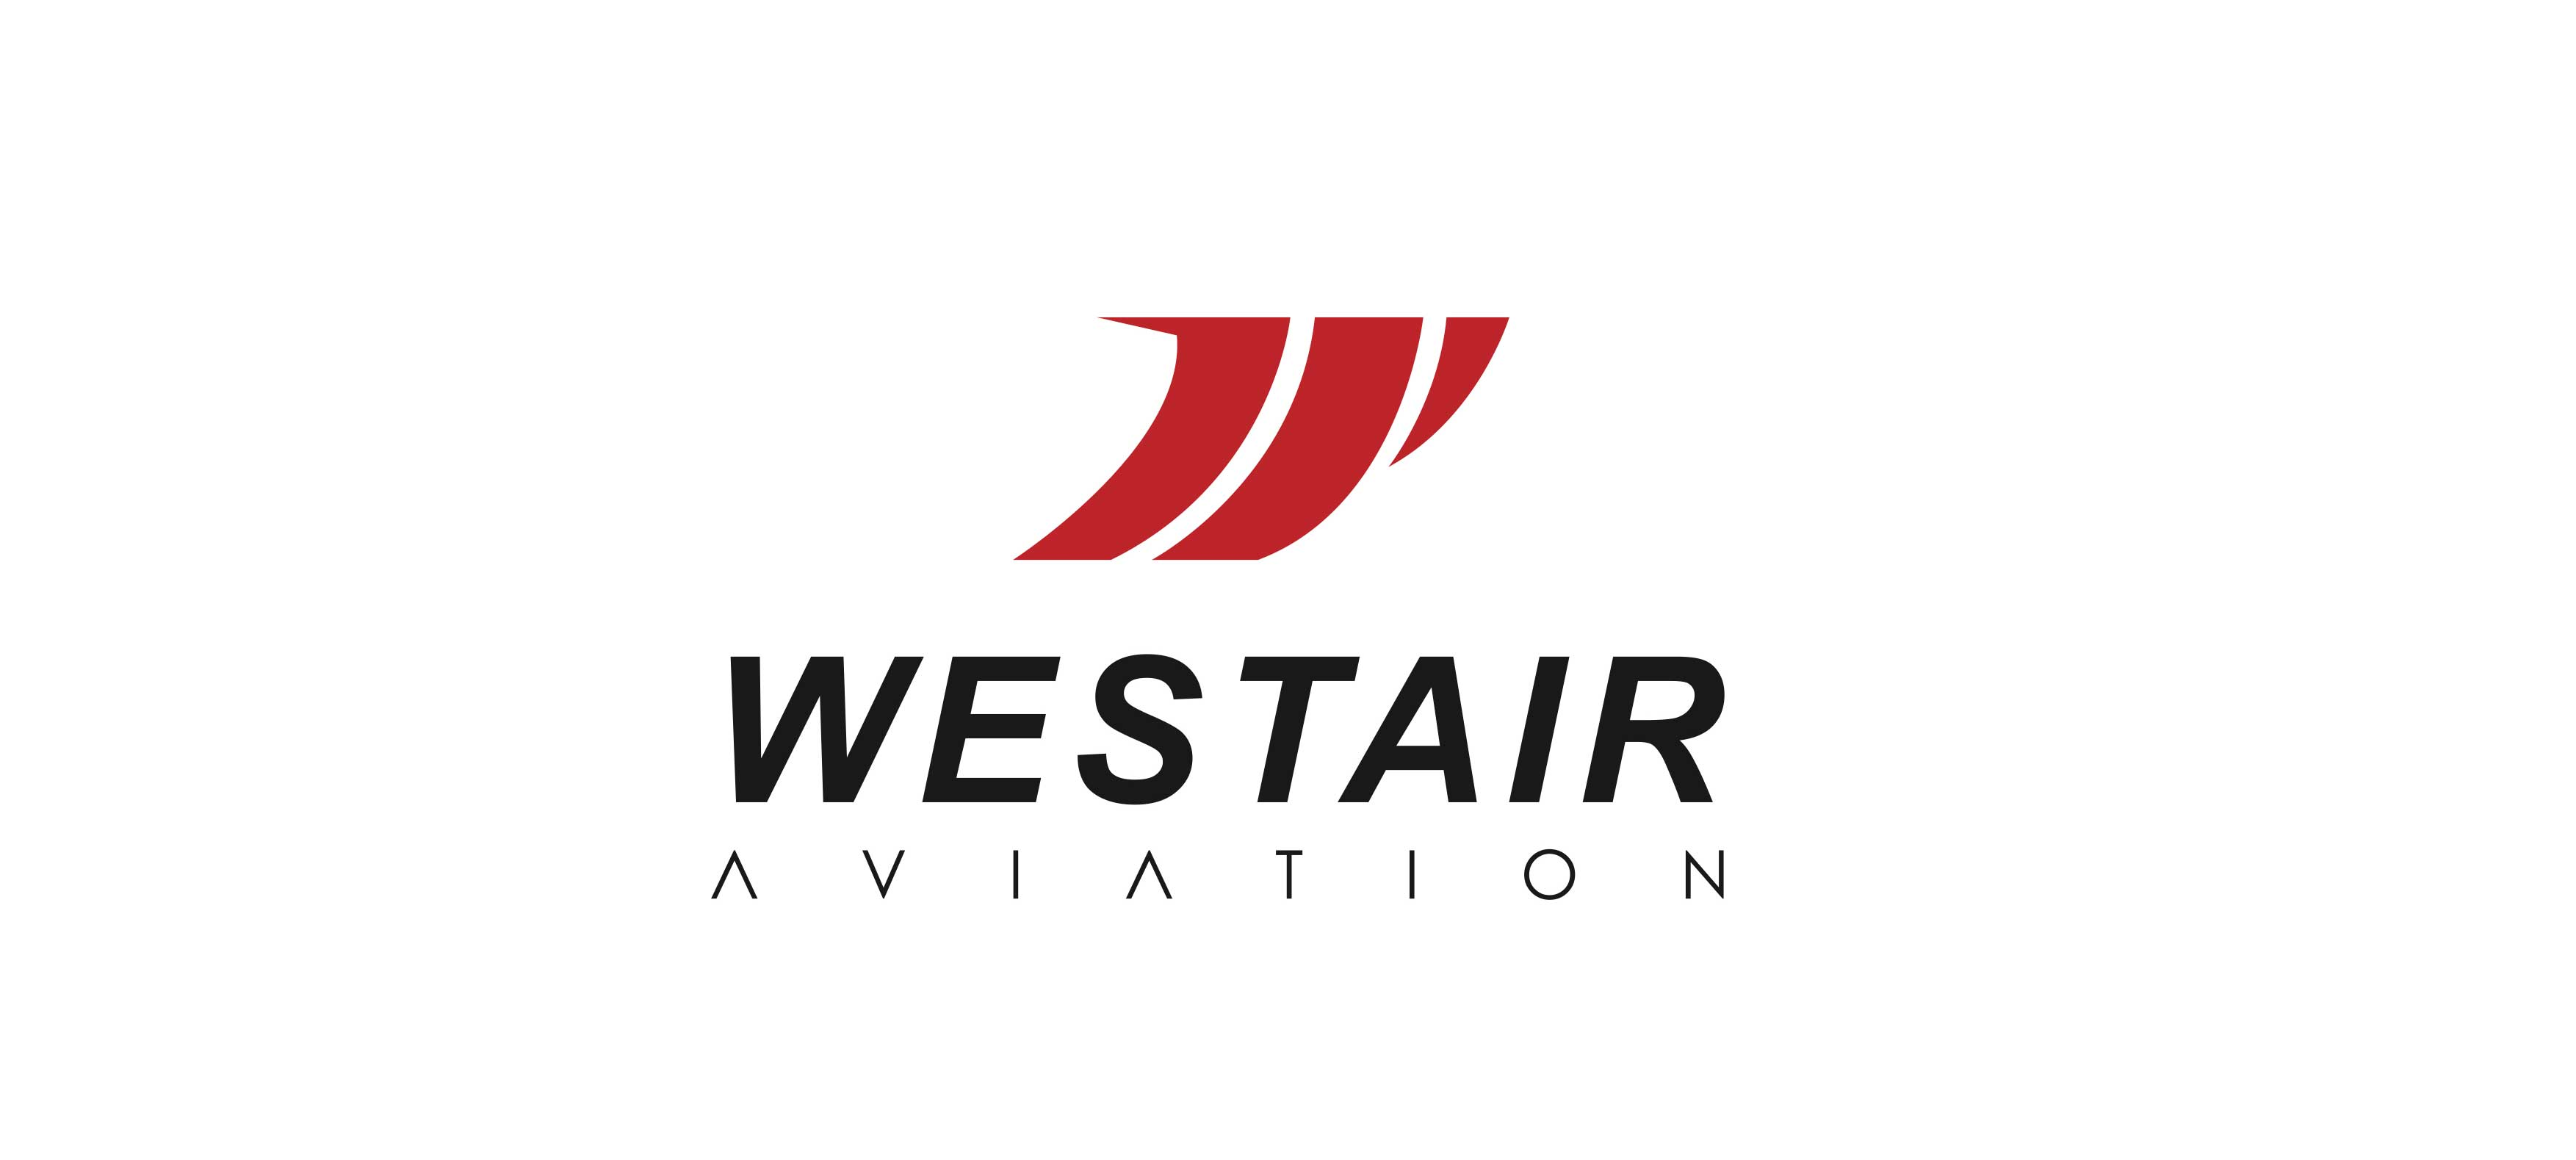 Westair_Aviation_logo_p1